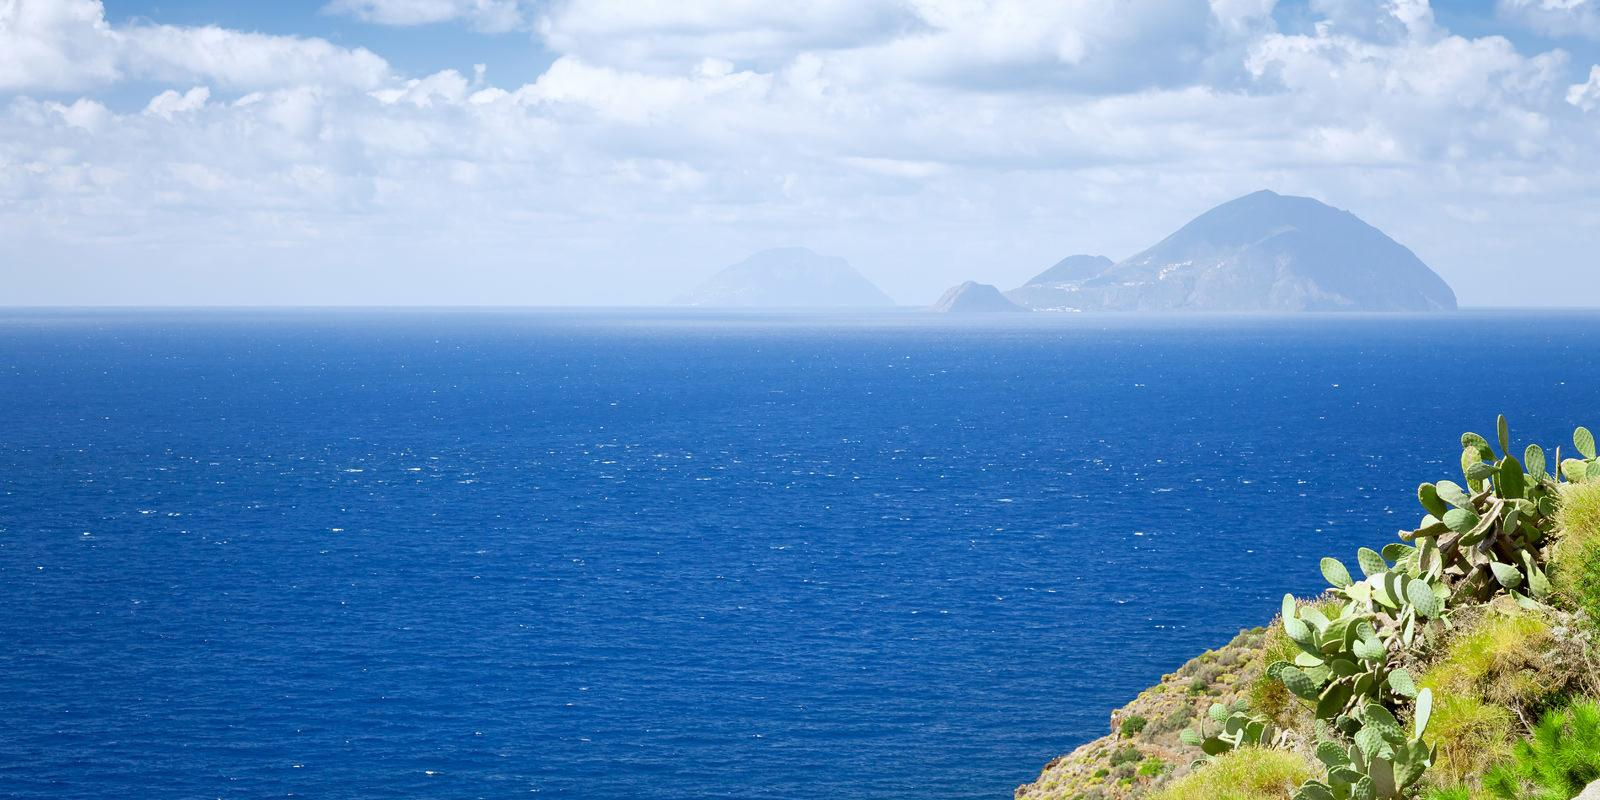 Cruise to the Aeolian Islands